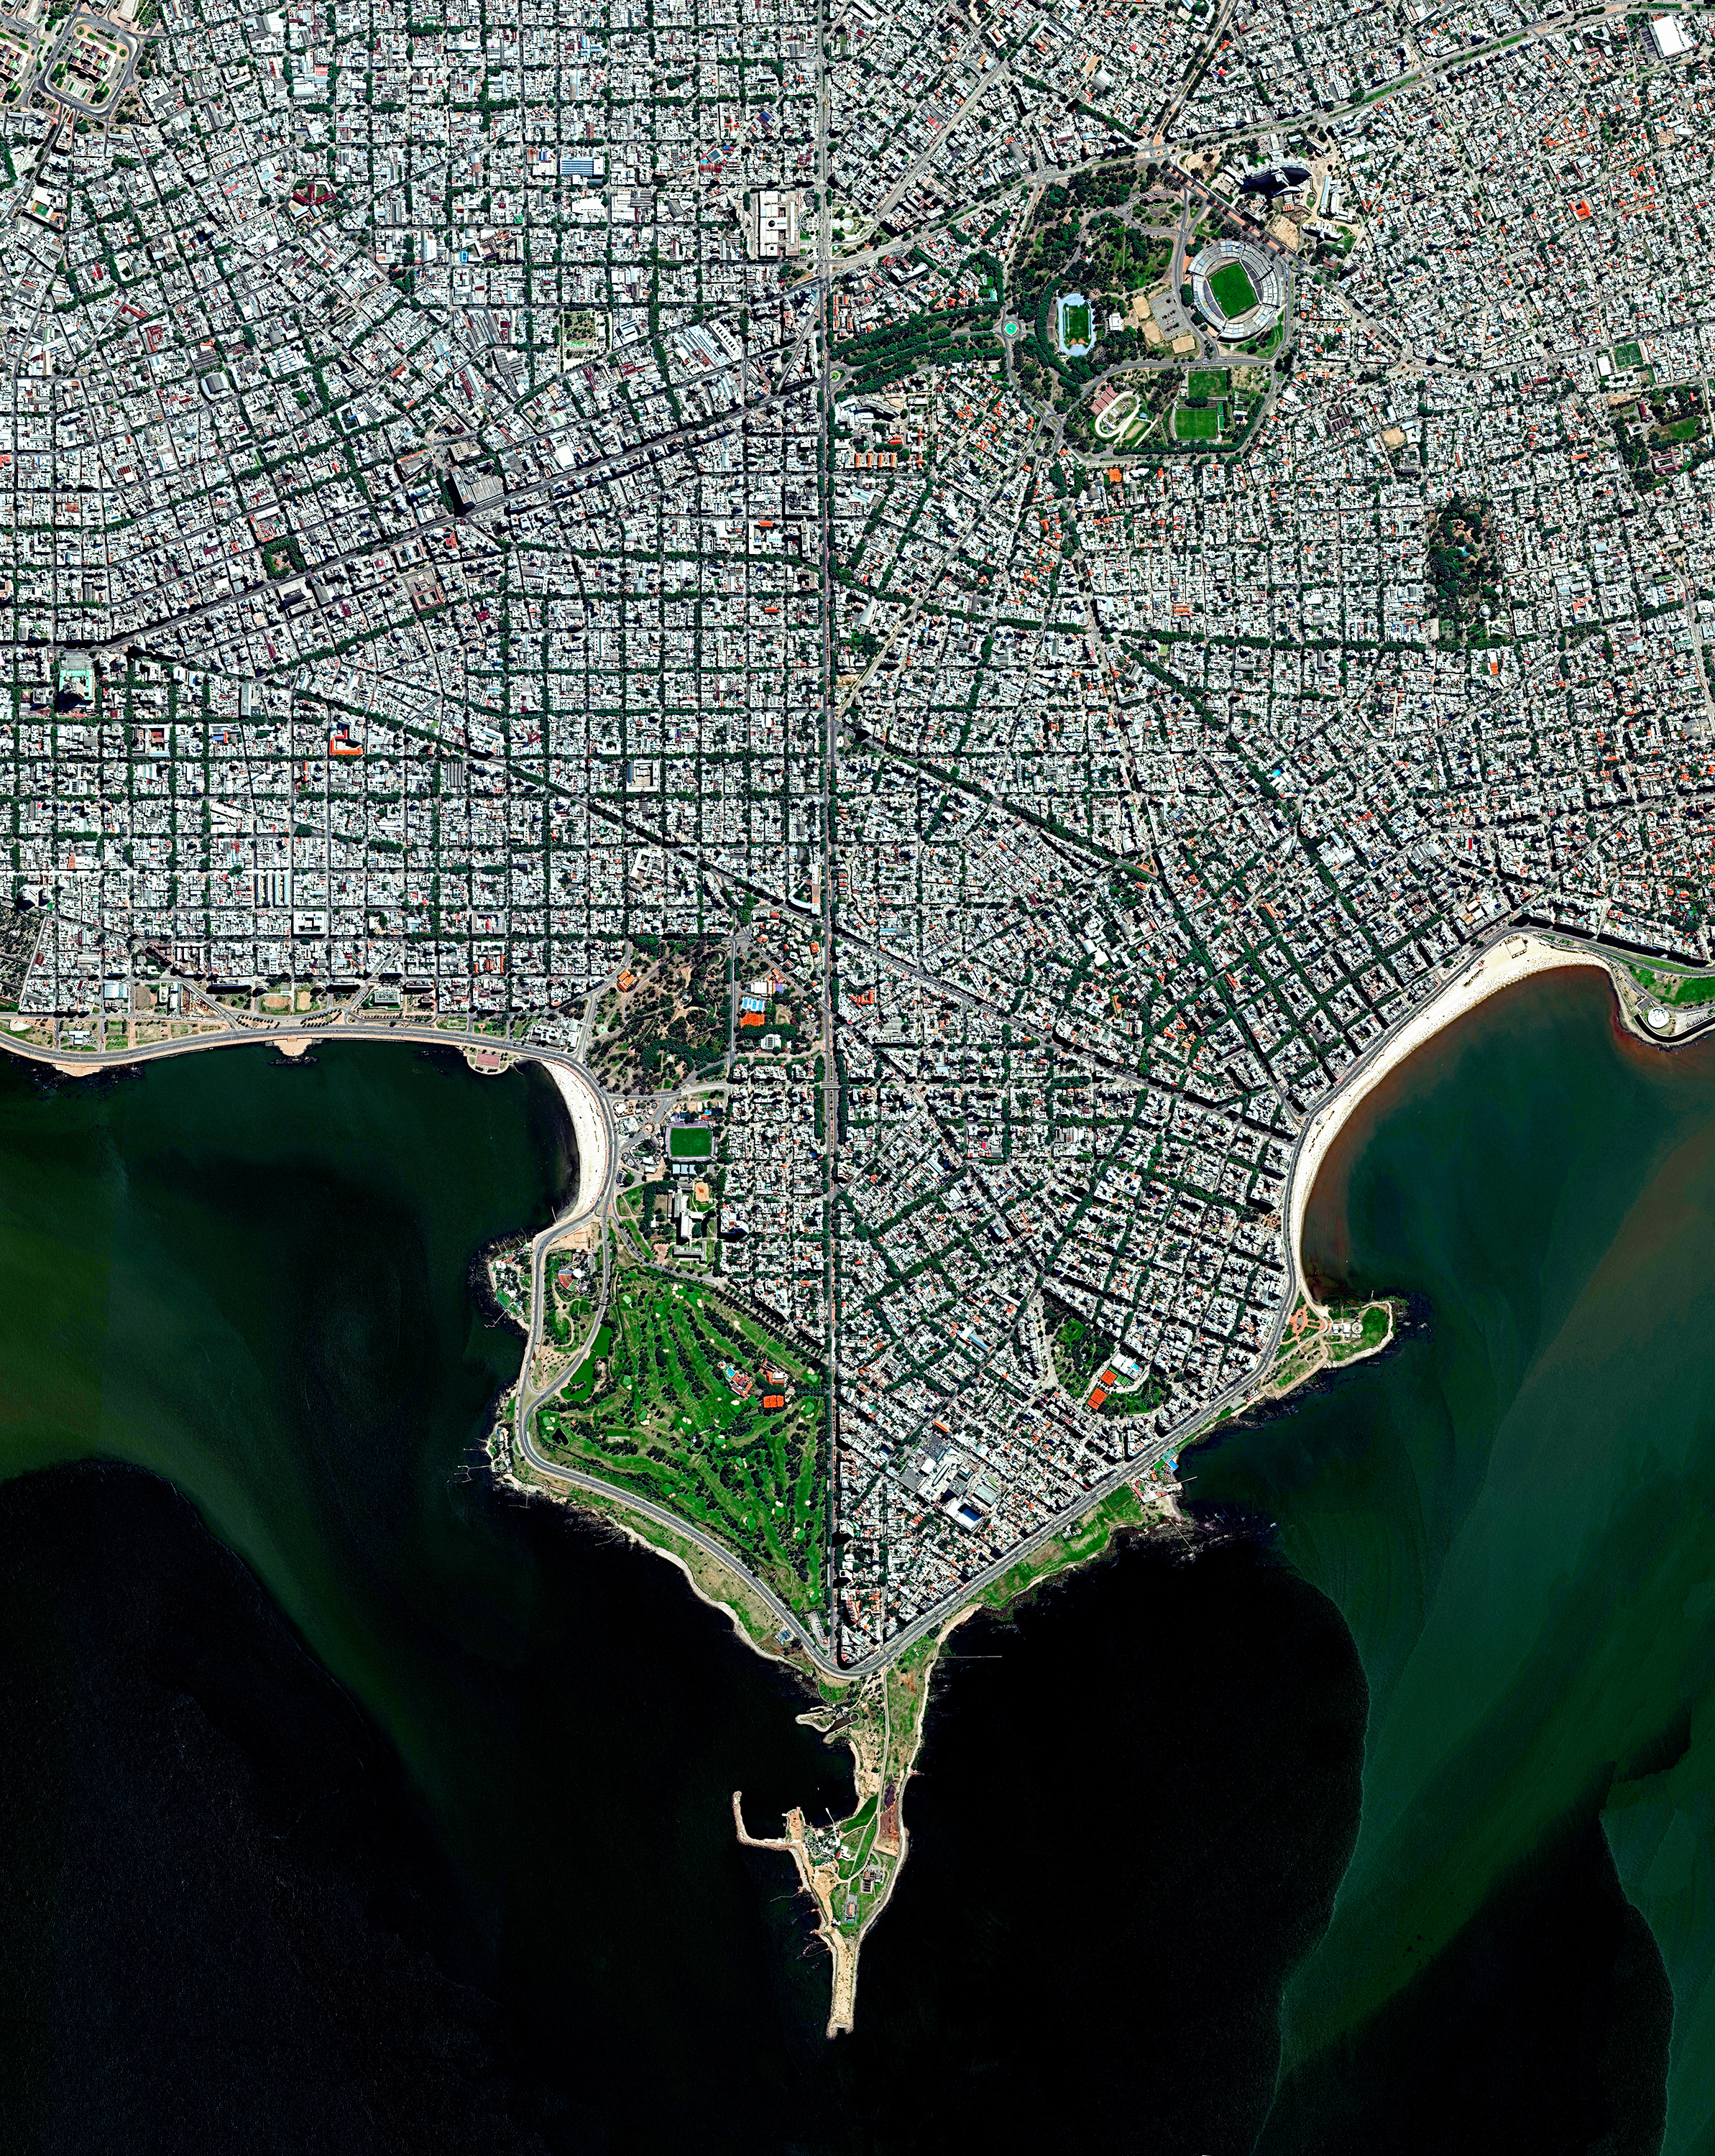 """Montevideo is the capital and most populous city of Uruguay, with about 1.3 million residents — more than one-third of the country's total population. It is also the southernmost capital city in the Americas, located southeast of Buenos Aires, Argentina, across the Río de la Plata. Montevideo is divided into 62 barrios (neighborhoods), each with its own identity, geographic location, and socio-cultural activities.  34°53'01.0""""S, 56°10'55.0""""W  Source imagery: DigitalGlobe"""